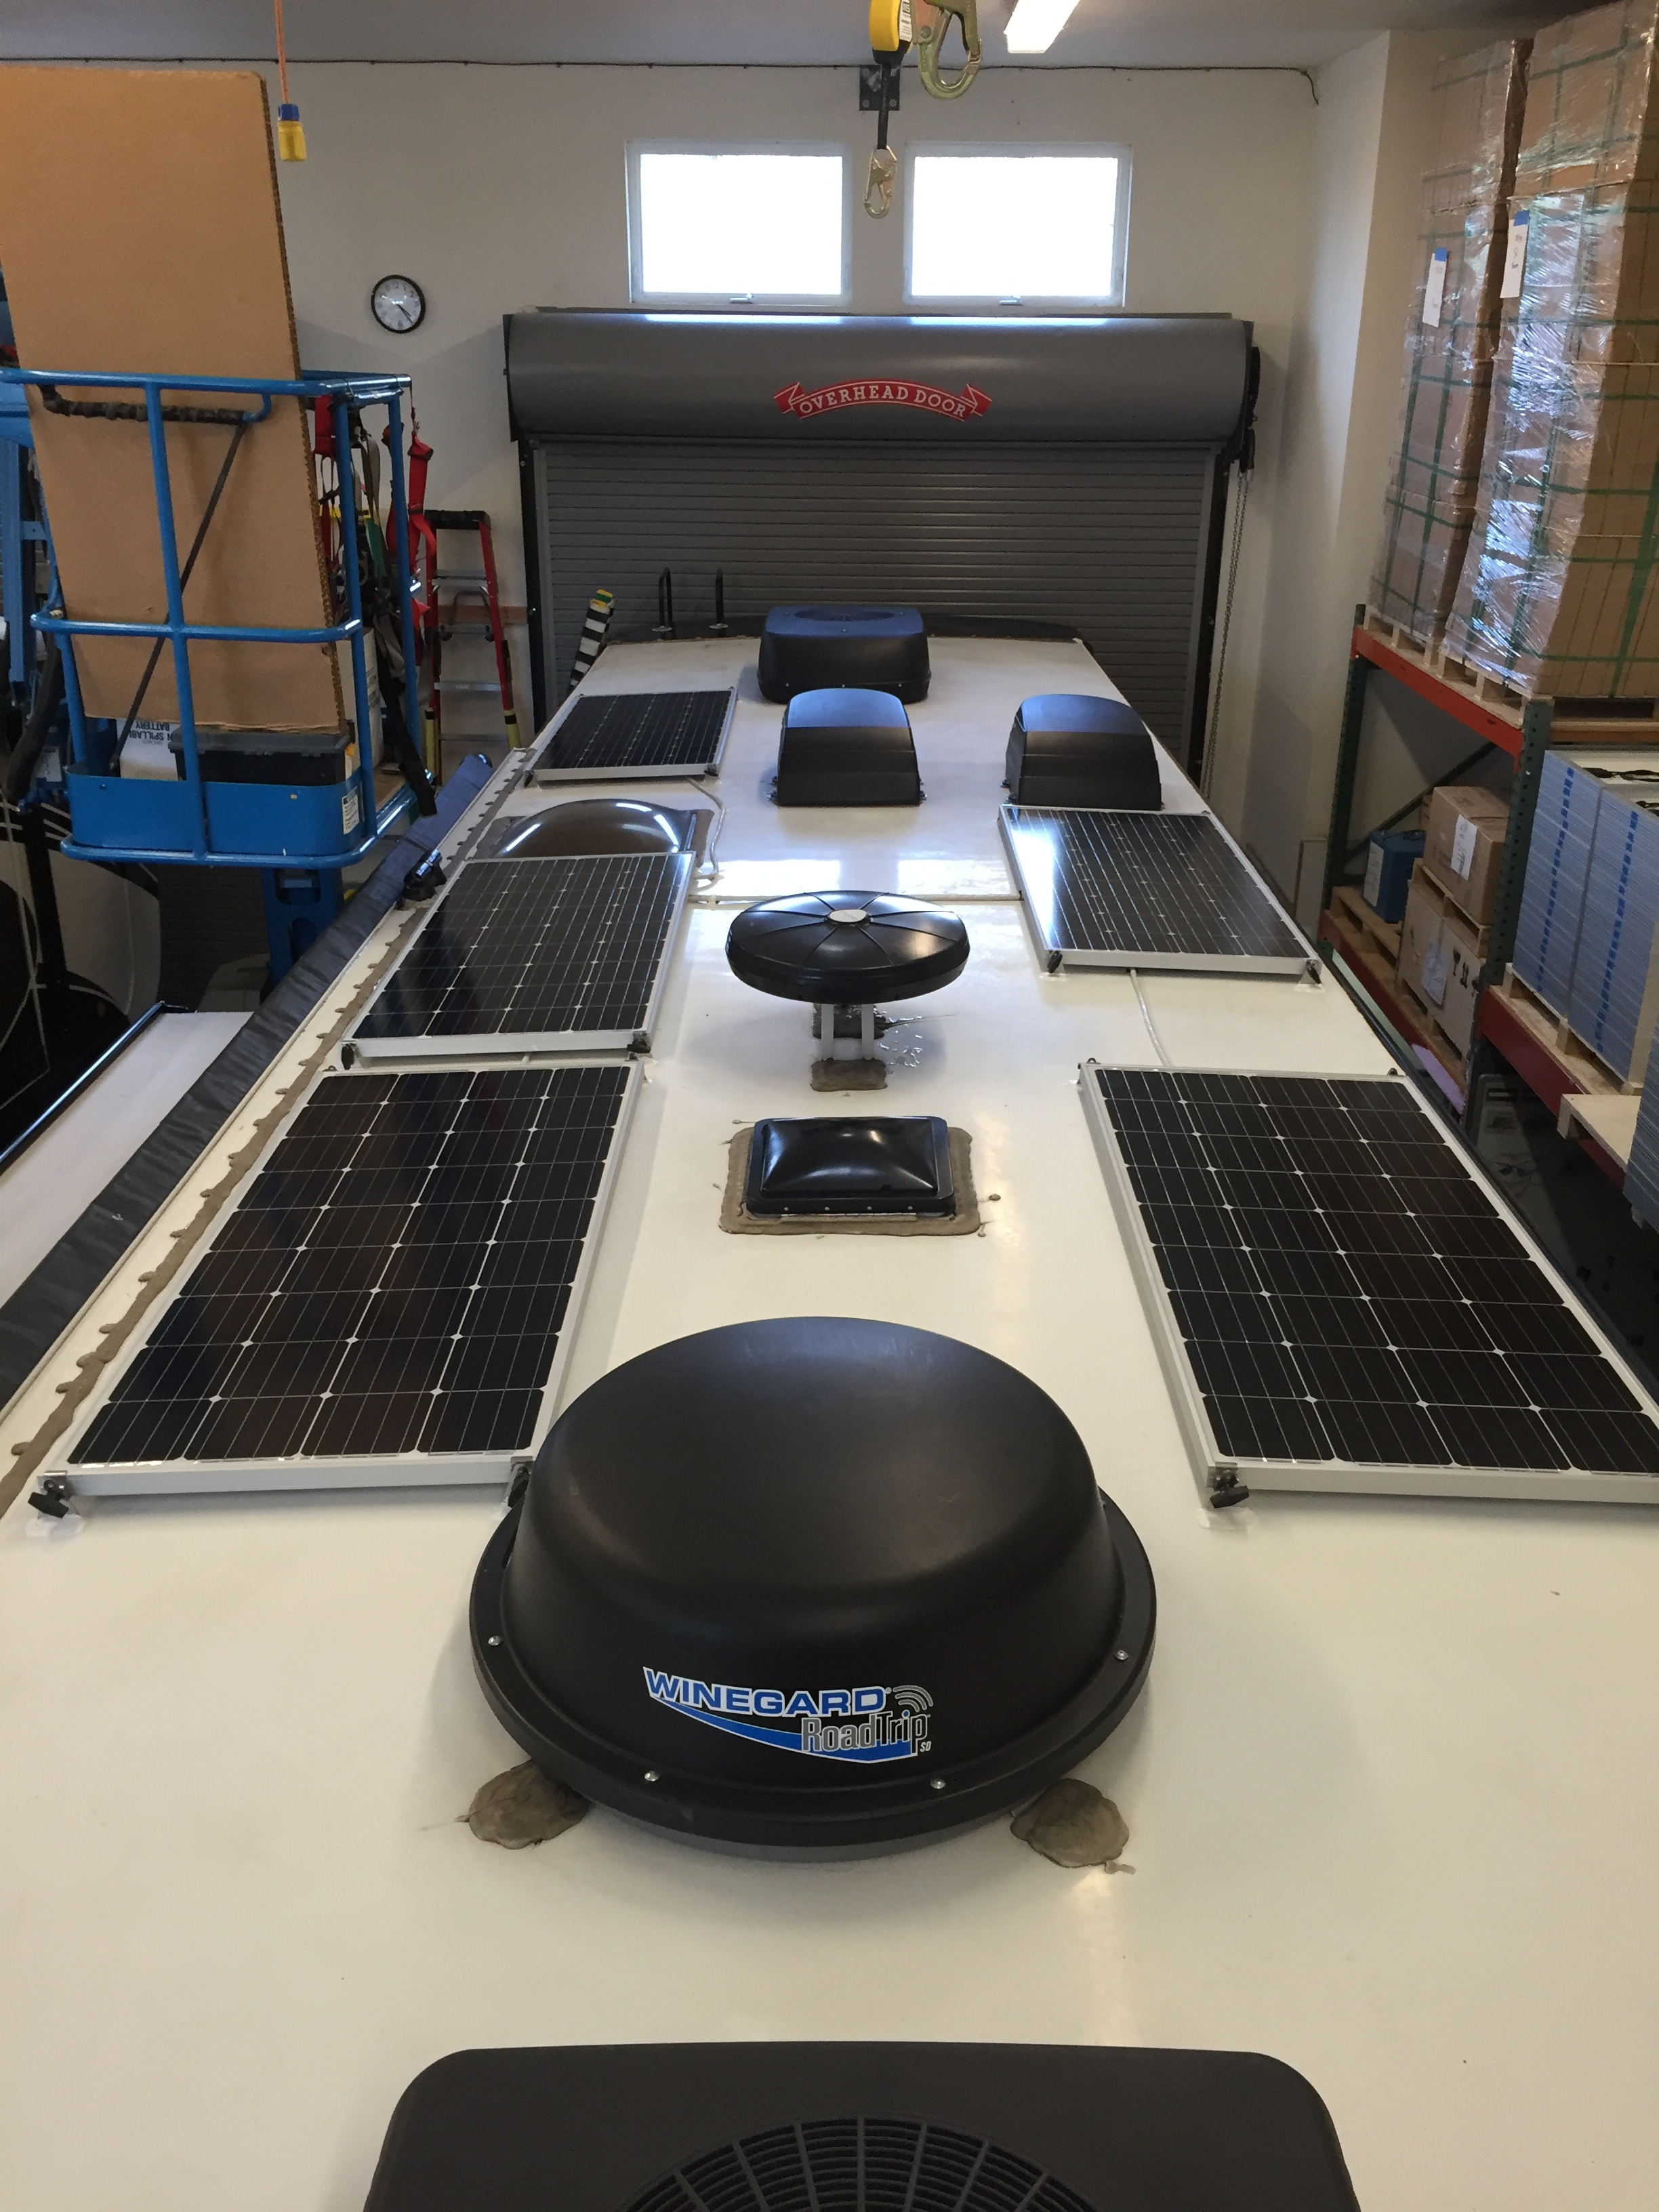 800W of SF160 Solar Panels